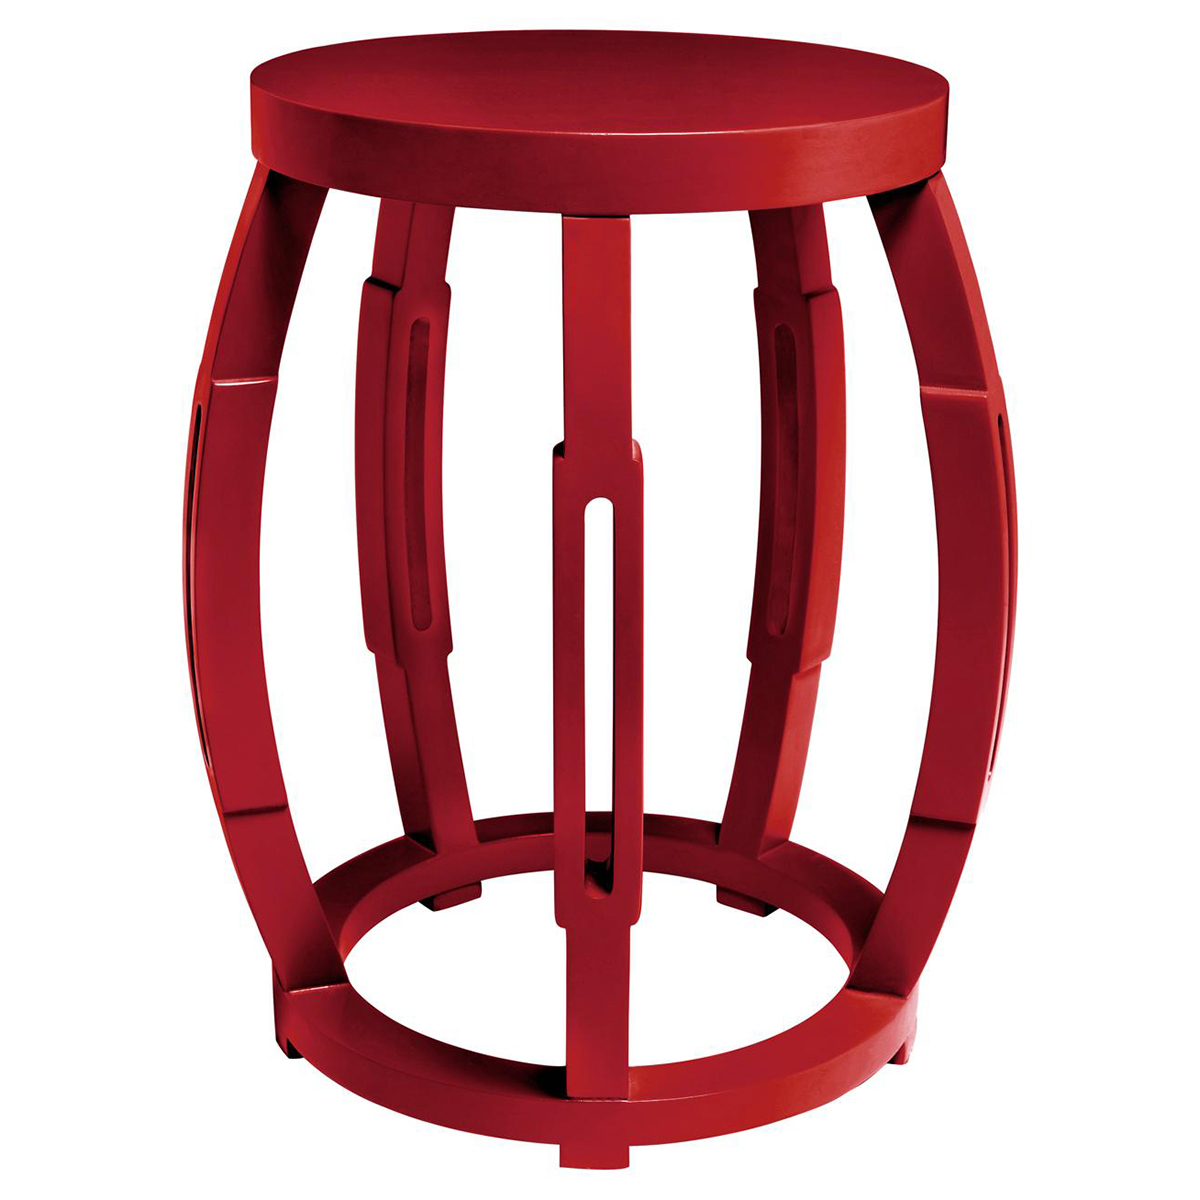 Sanibel Hollywood Regency Red Side Table Stool